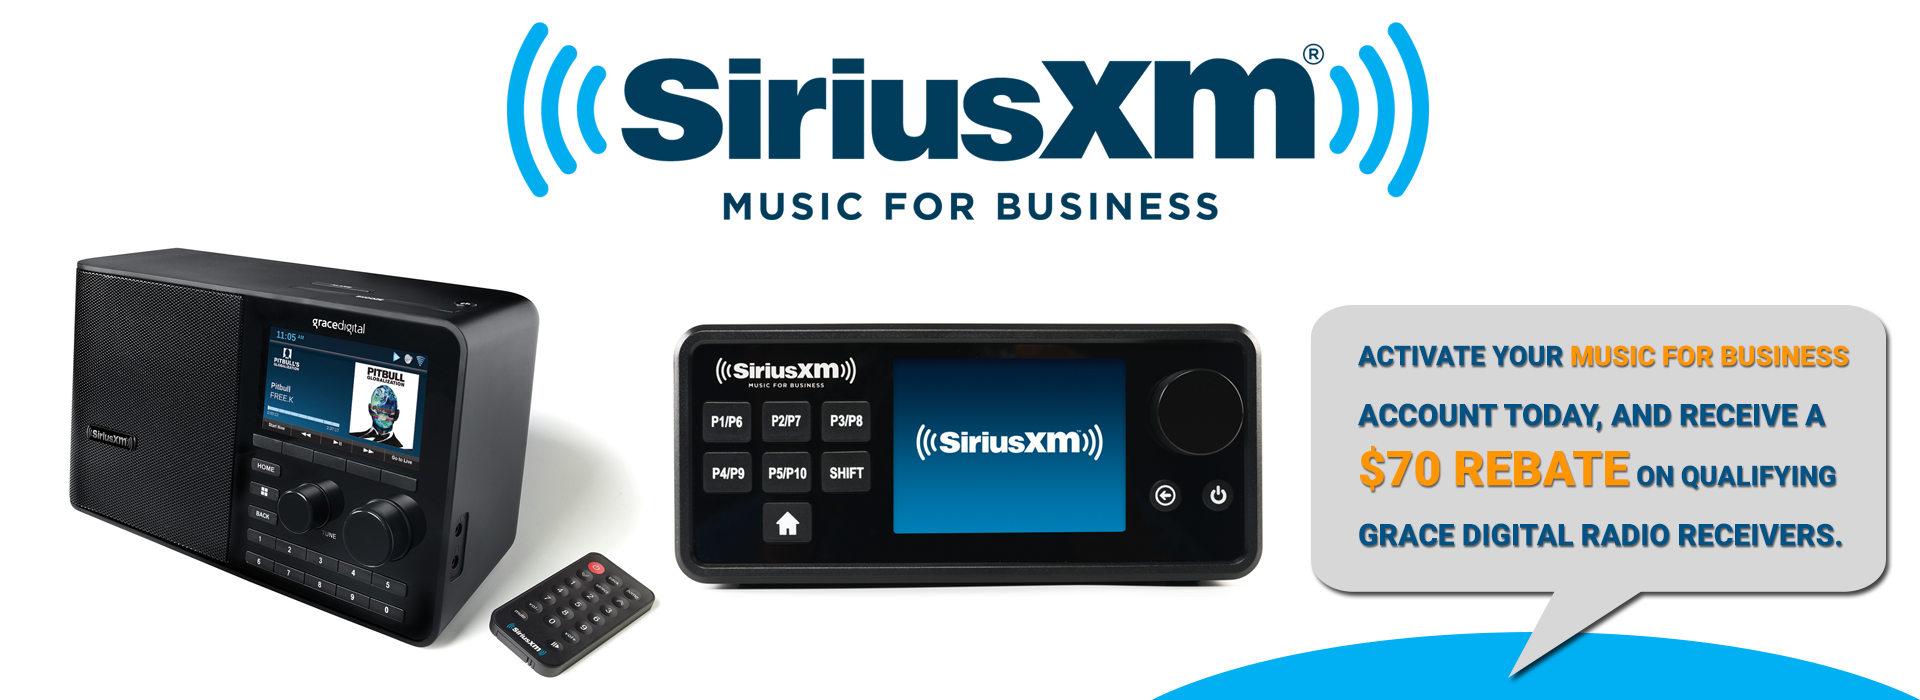 SiriusXM Music for Business Grace Digital Internet Radios